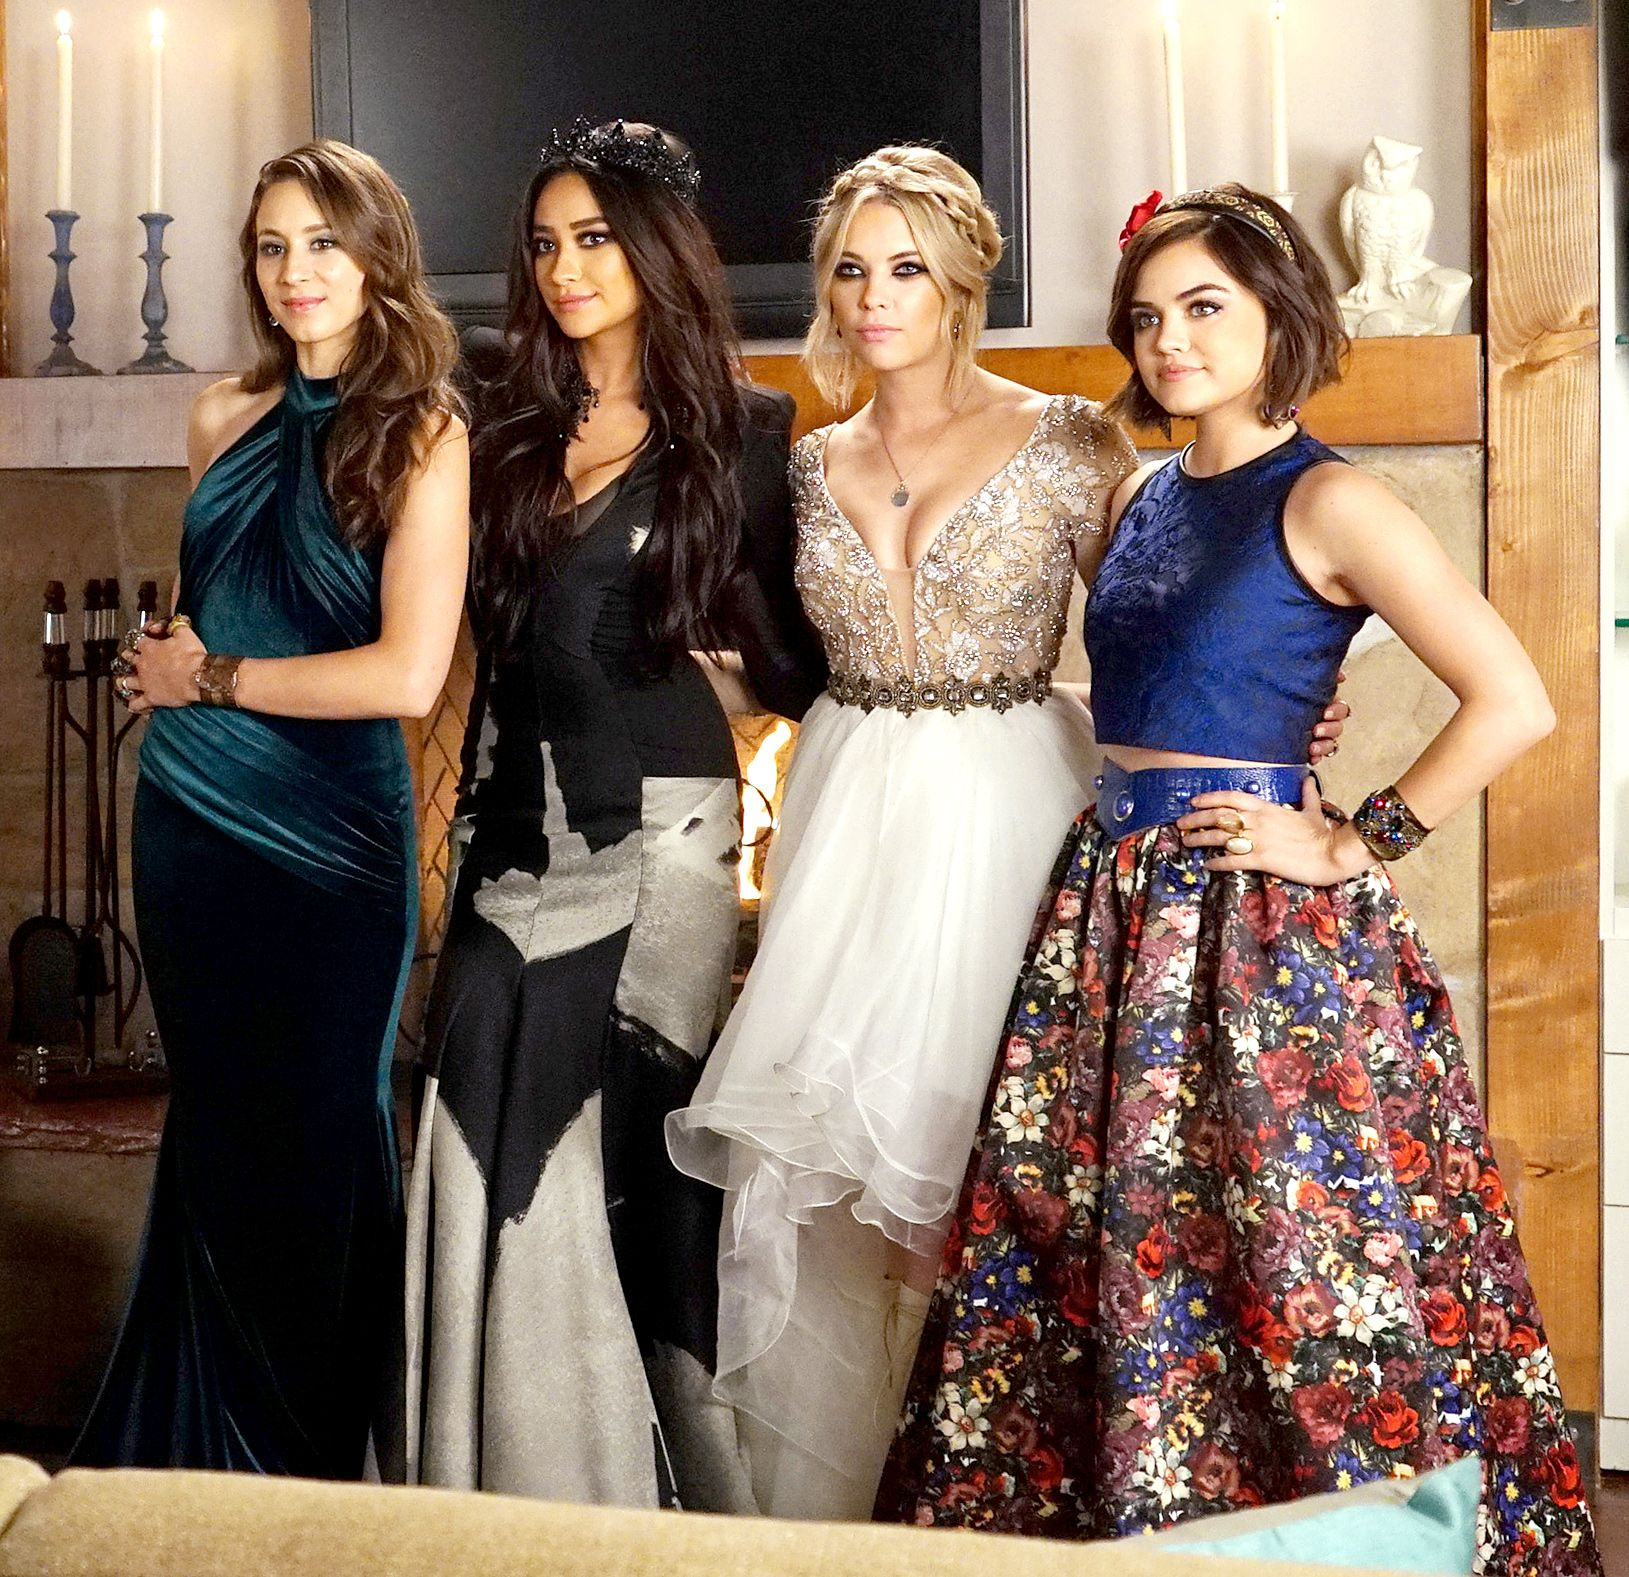 Troian Bellisario, Shay Mitchell, Ashley Benson and Lucy Hale